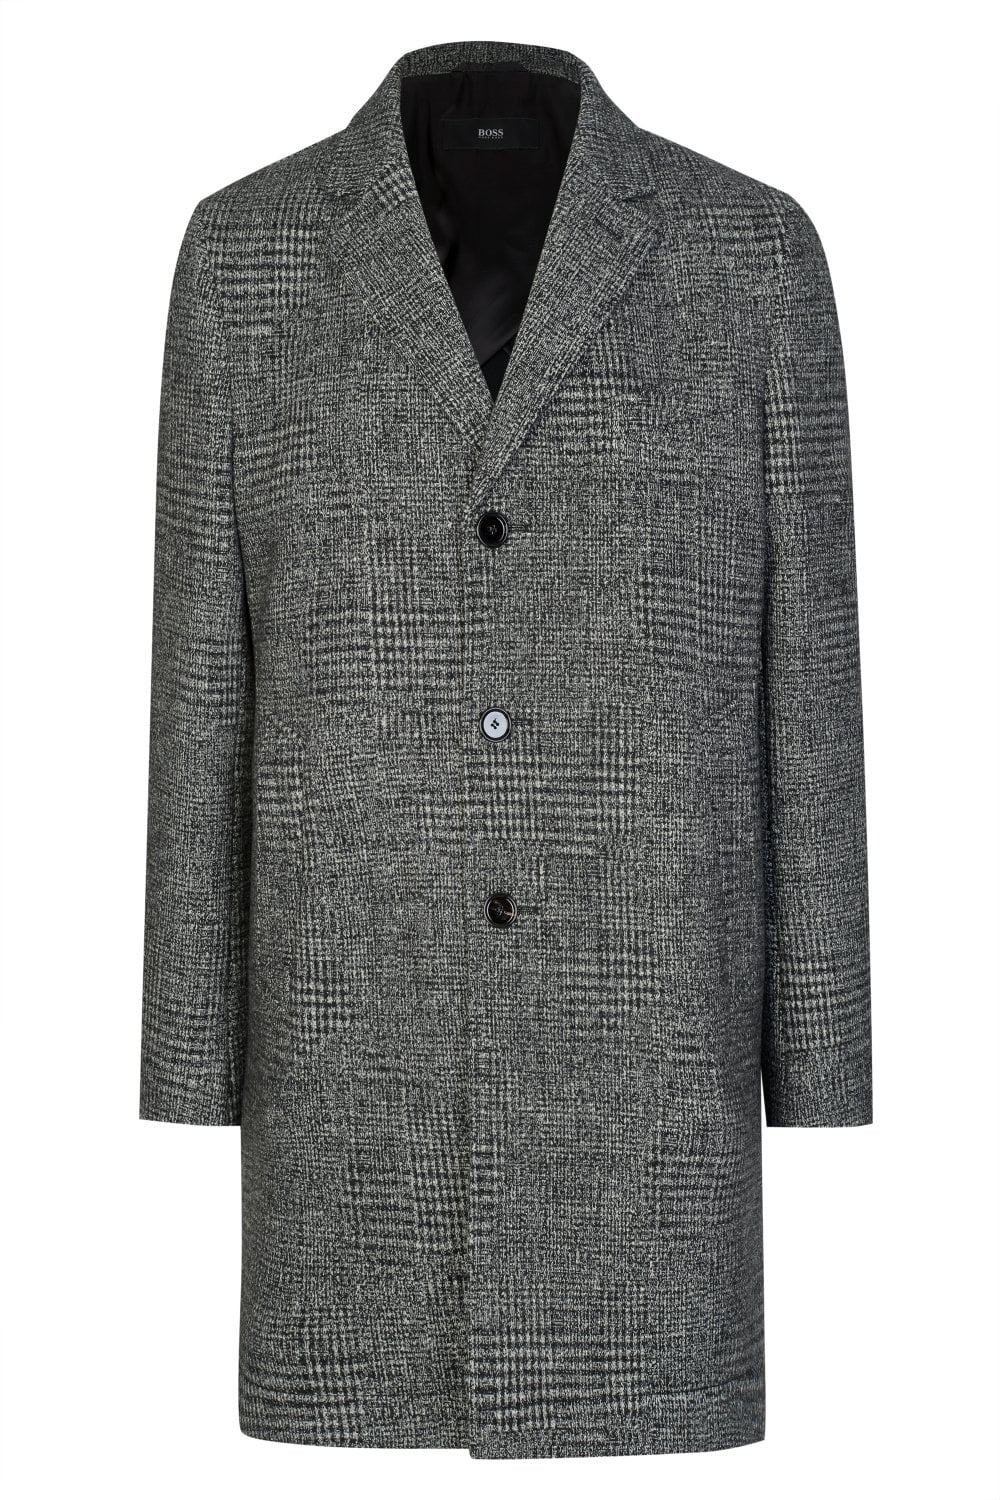 59079fd2 BOSS Shawn7 Checked Coat Grey - Clothing from Circle Fashion UK